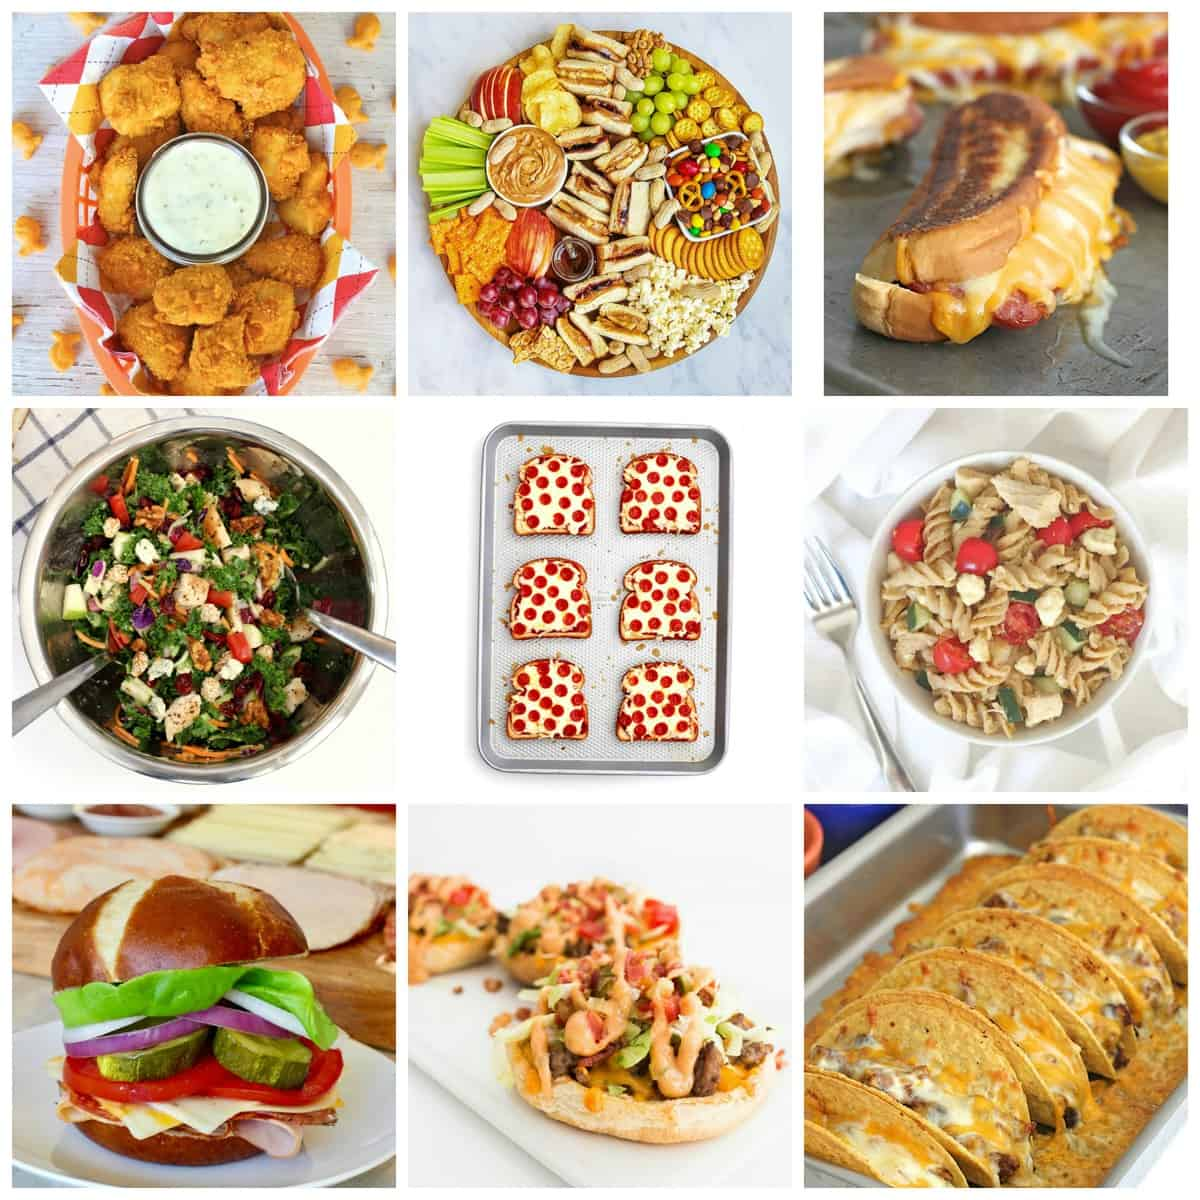 Easy Meals to Make with Pantry, Fridge & Freezer Staples